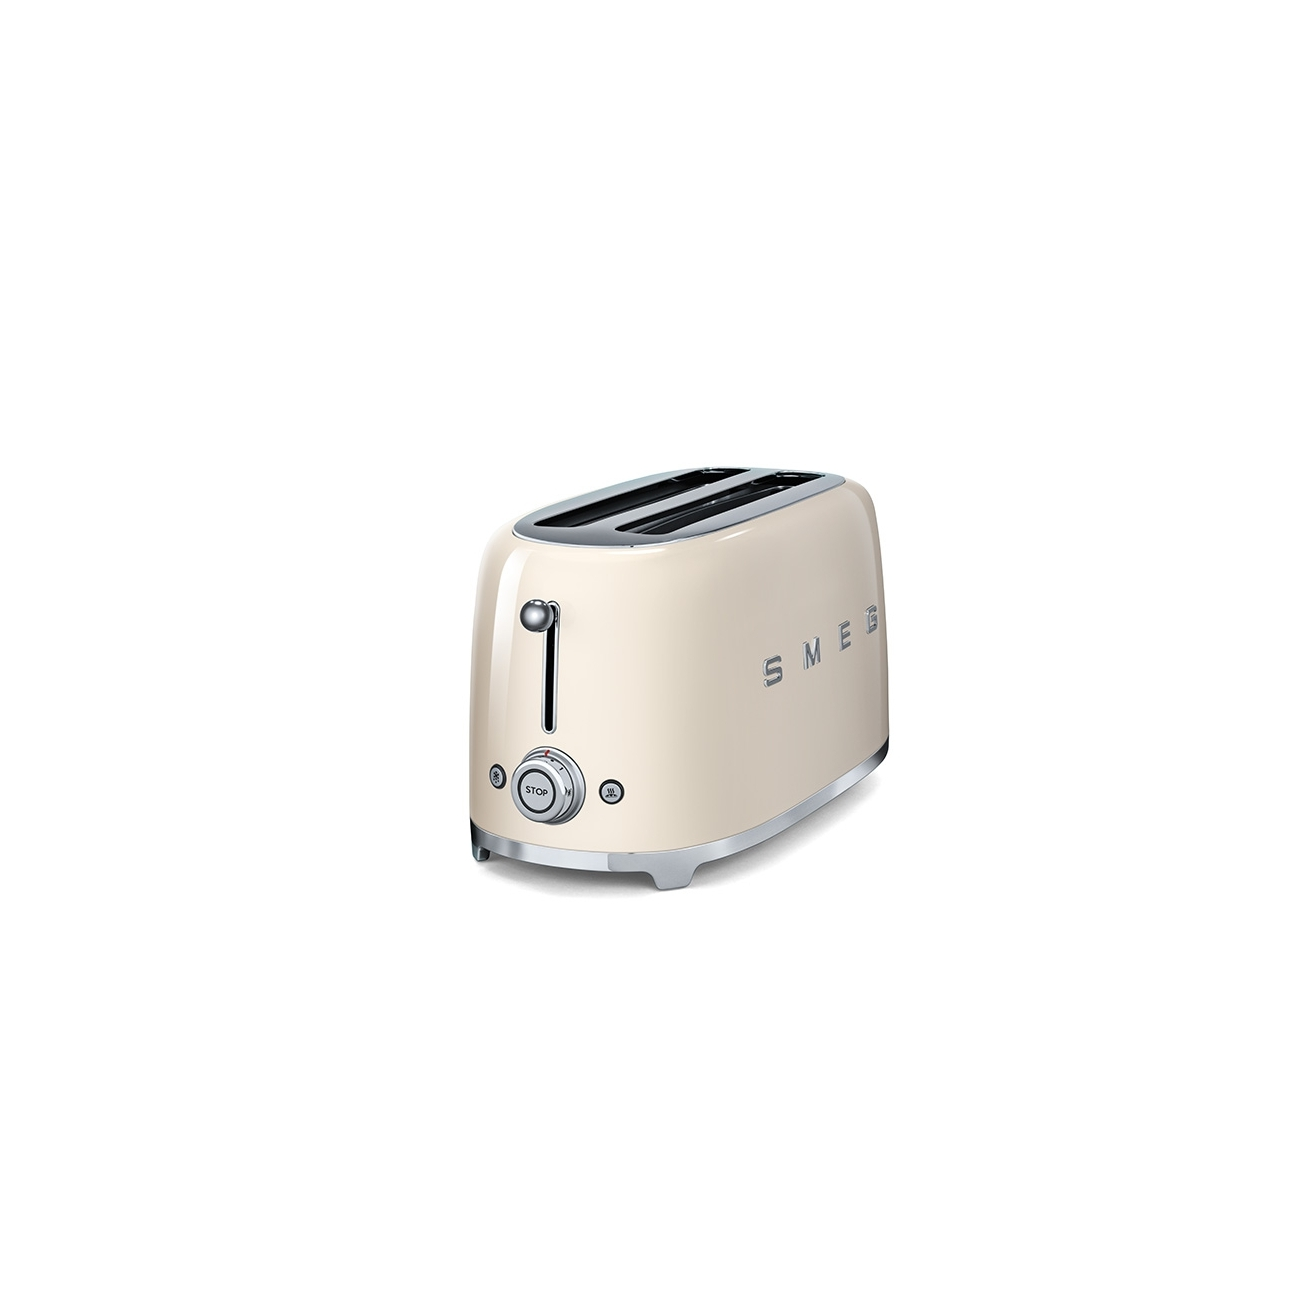 smeg 4 slice toasters cream tattahome. Black Bedroom Furniture Sets. Home Design Ideas